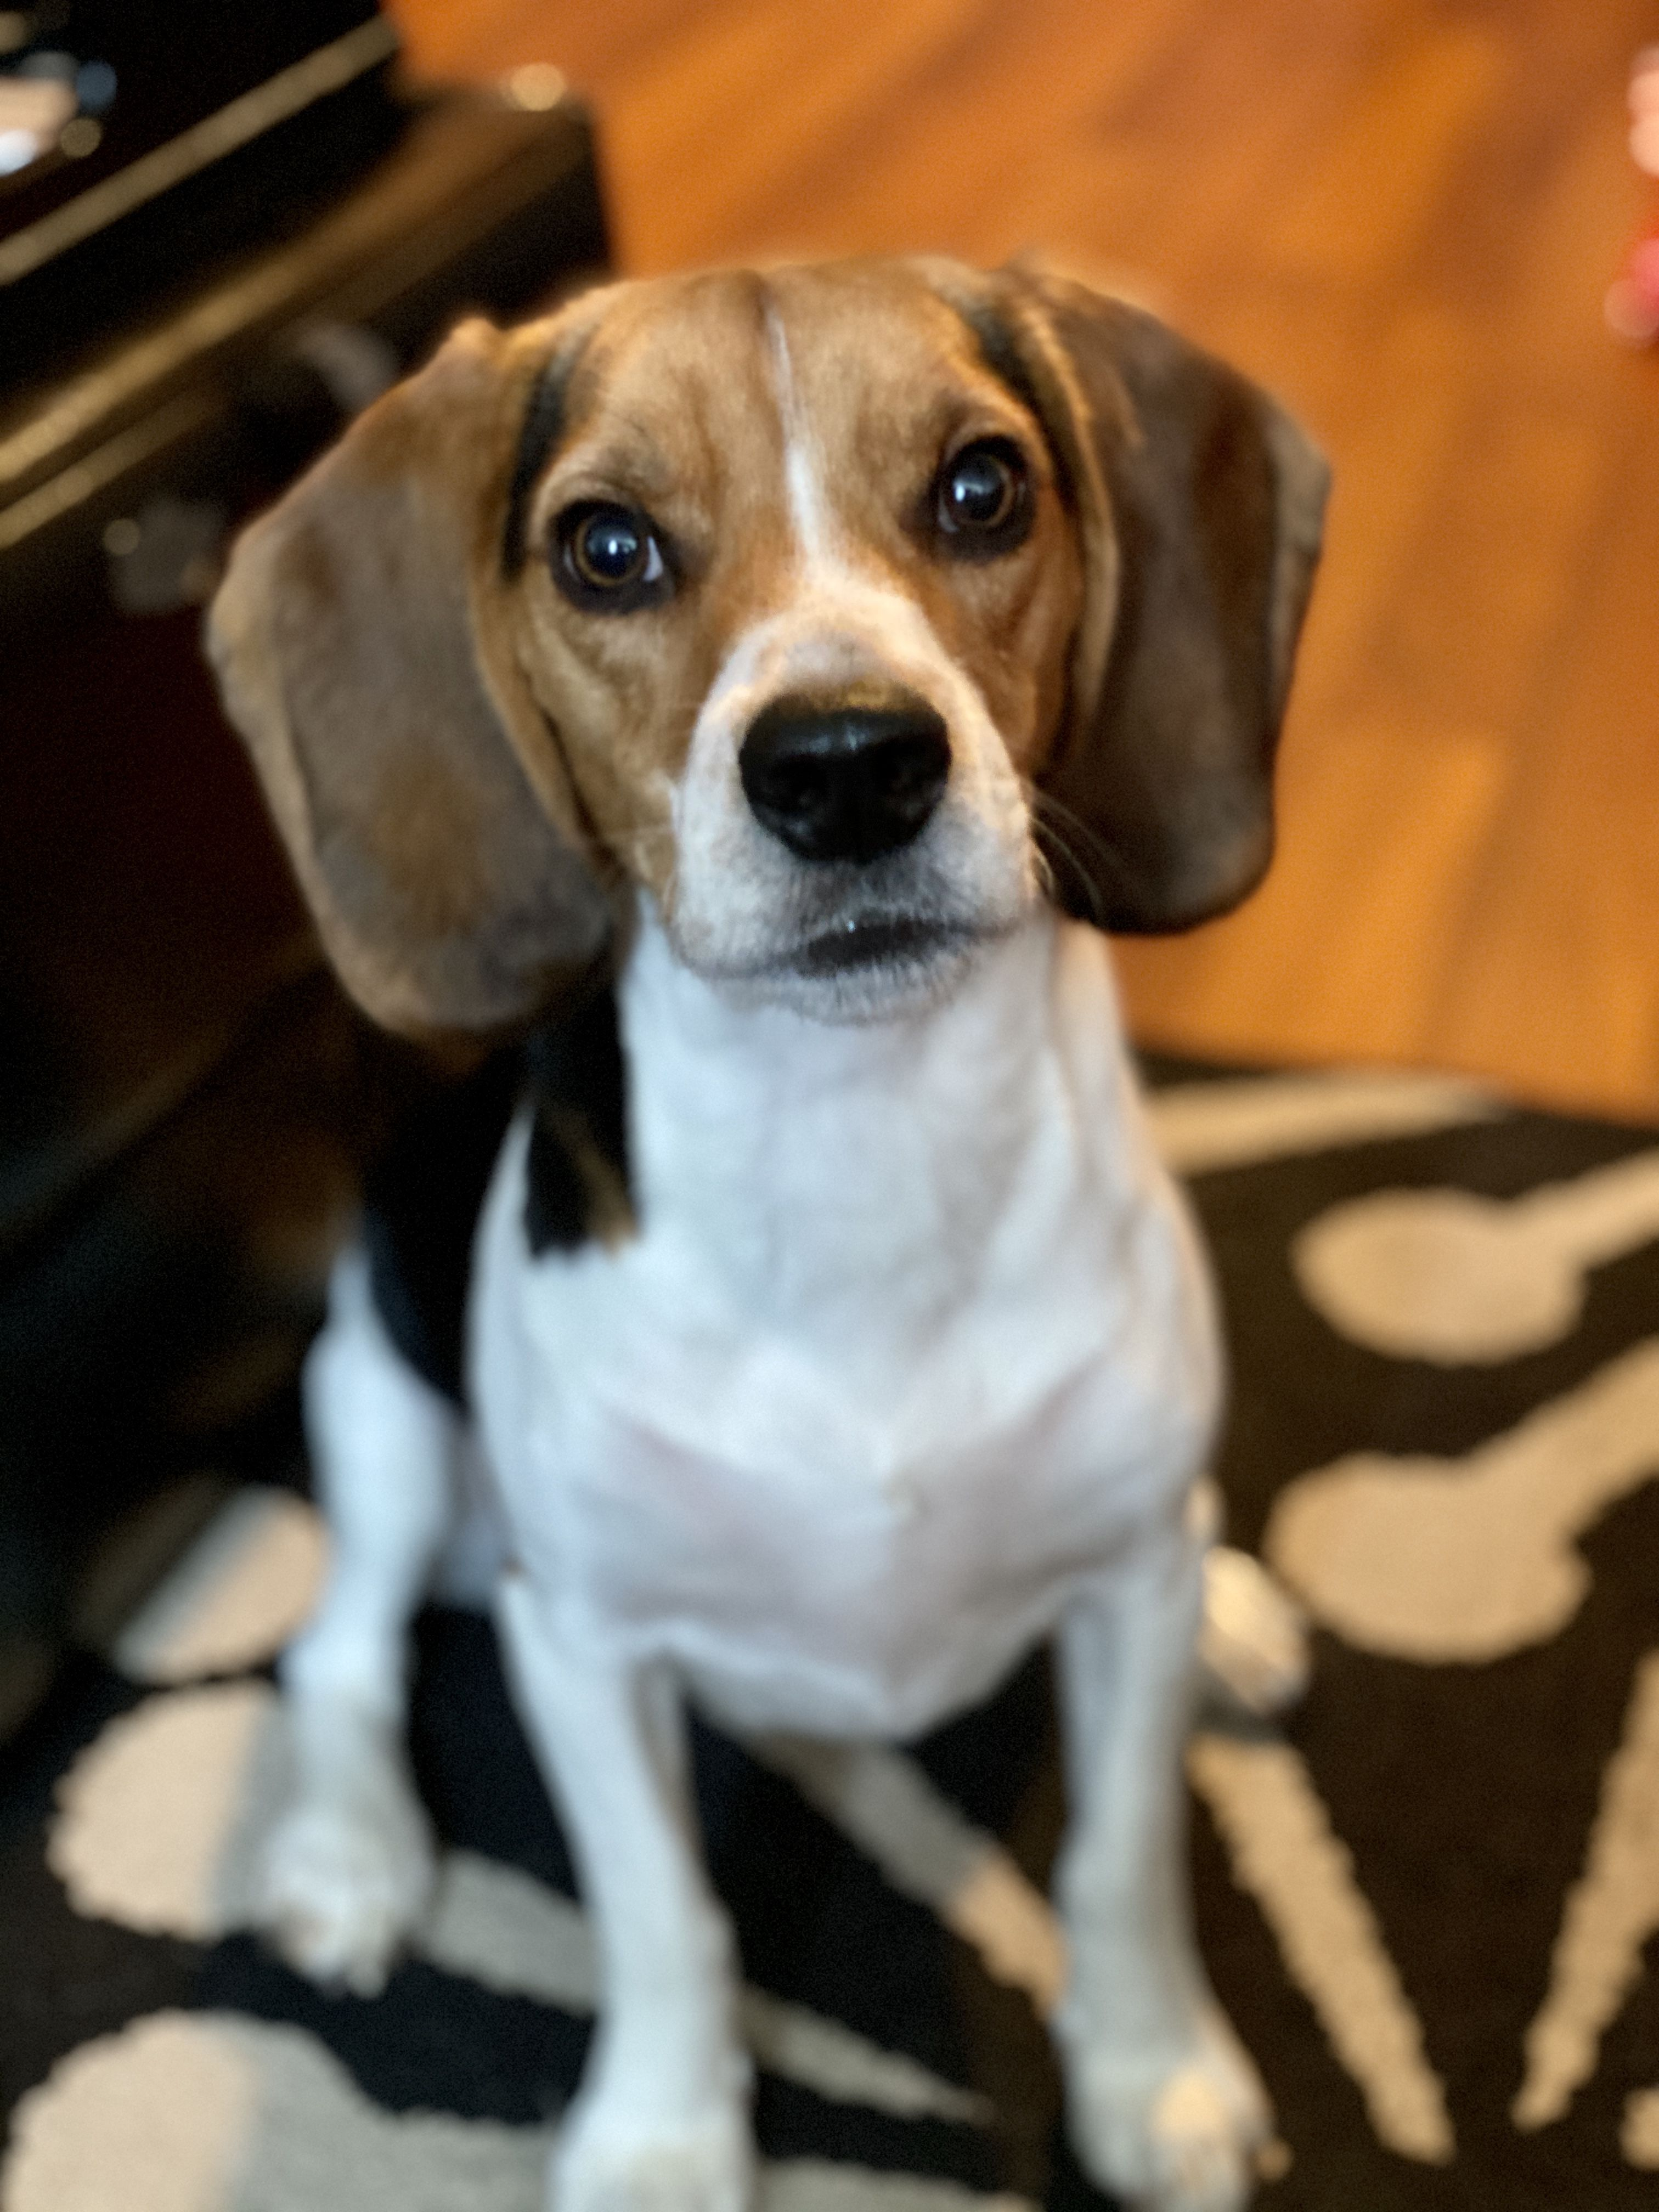 Training Snacks The One Year Old Beagle In 2020 Beagle Dog